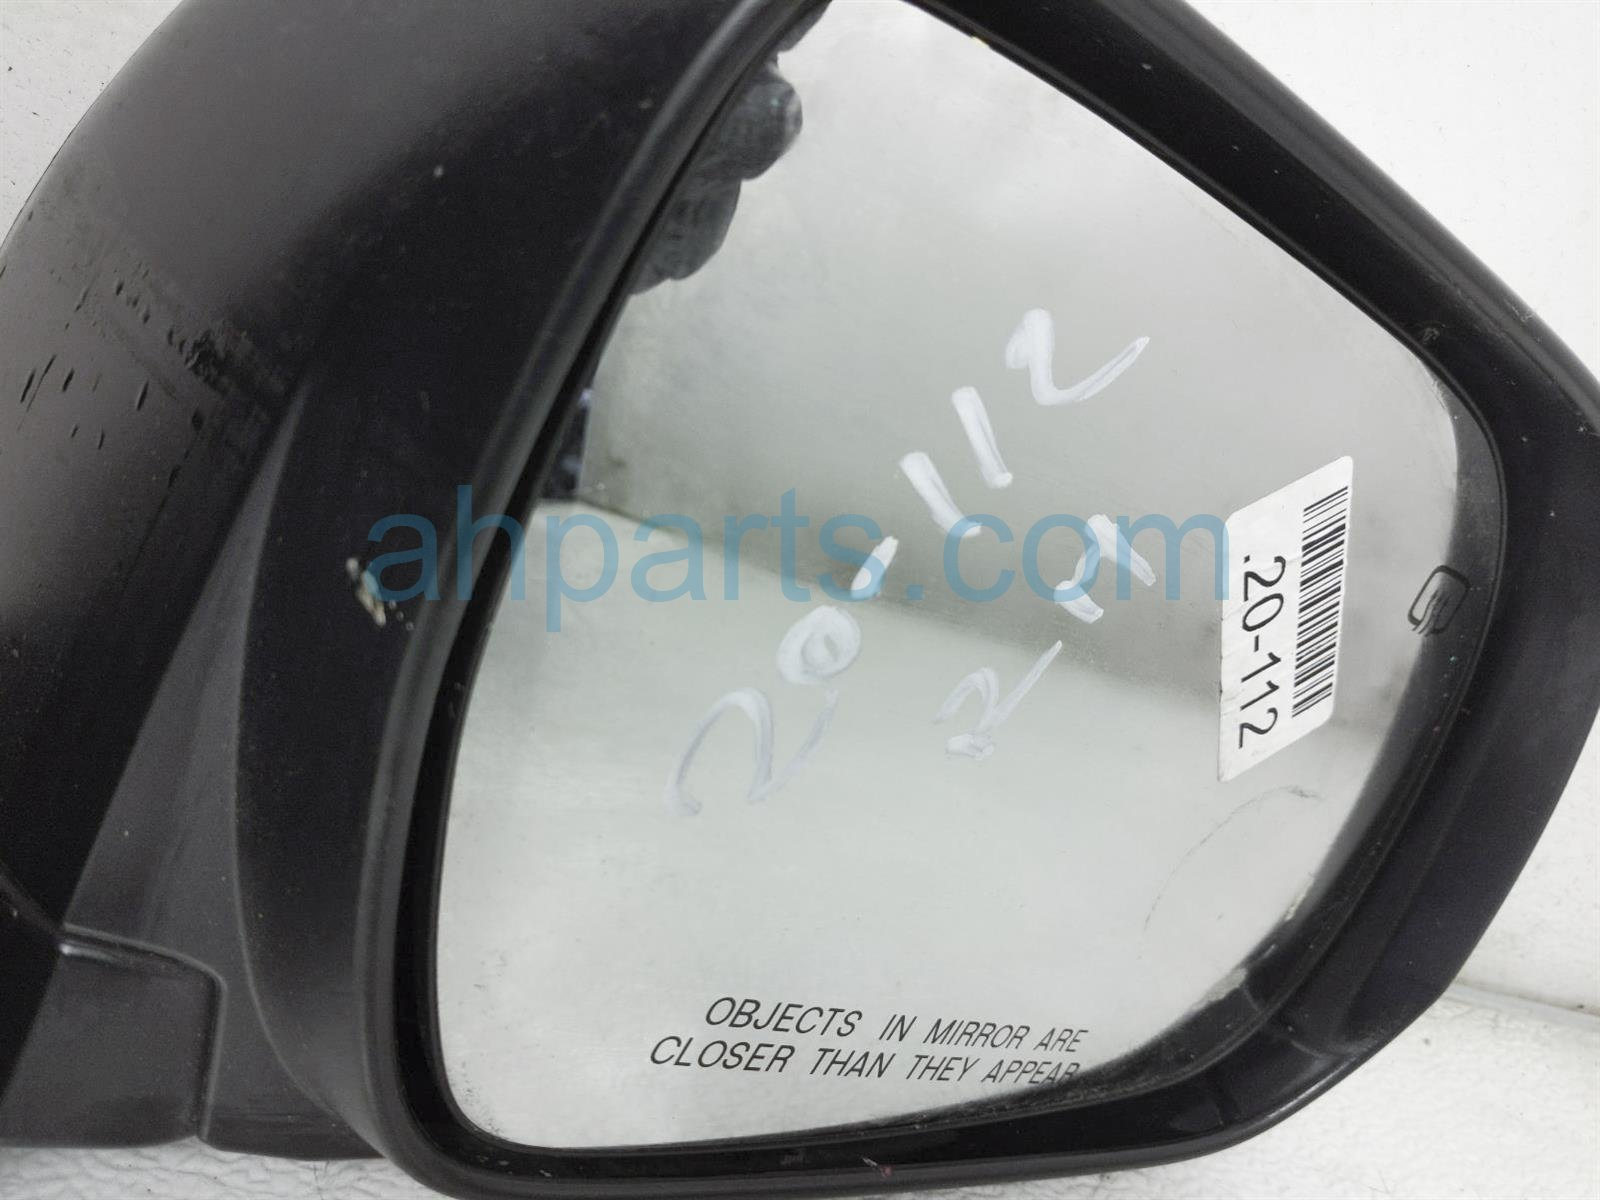 2013 Toyota Sienna Rear Passenger Side View Mirror   White 87910 08094 A0 Replacement